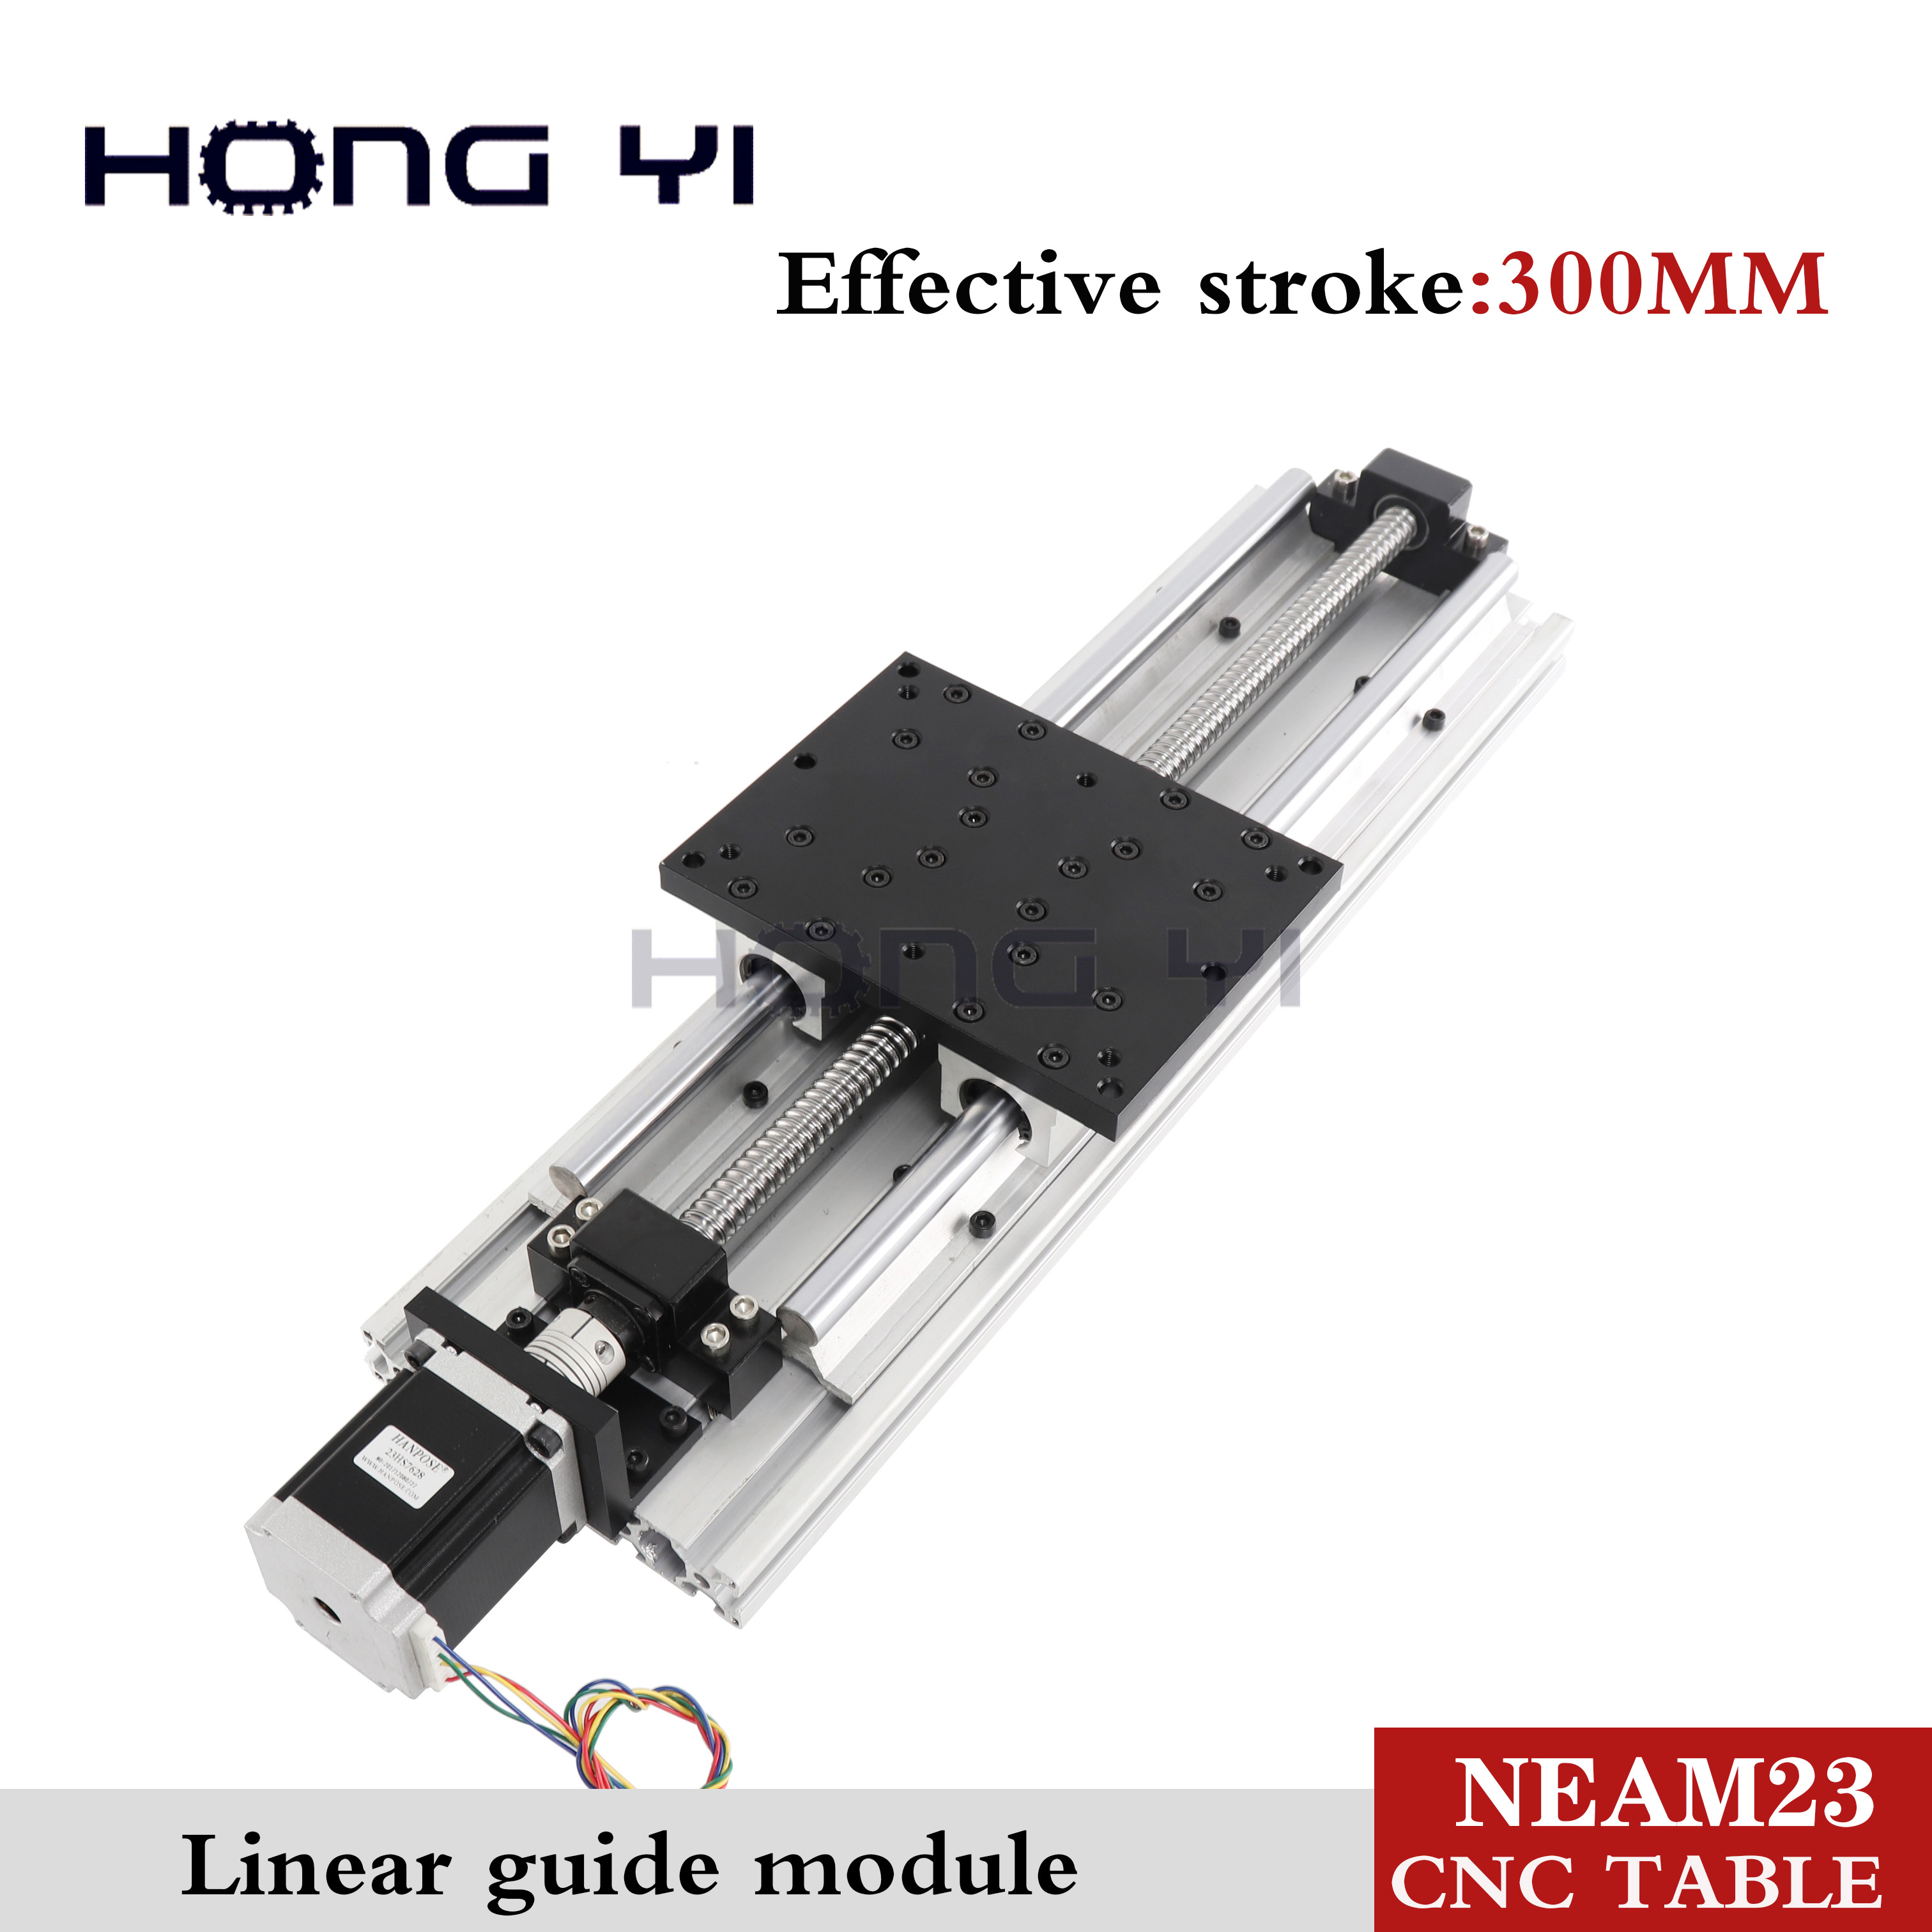 Best prices !! Linear Modules effective stroke 300mm Linear Guides SBR16 Ball screw NEMA 23 stepper motor for CNC table-in Linear Guides from Home Improvement    1